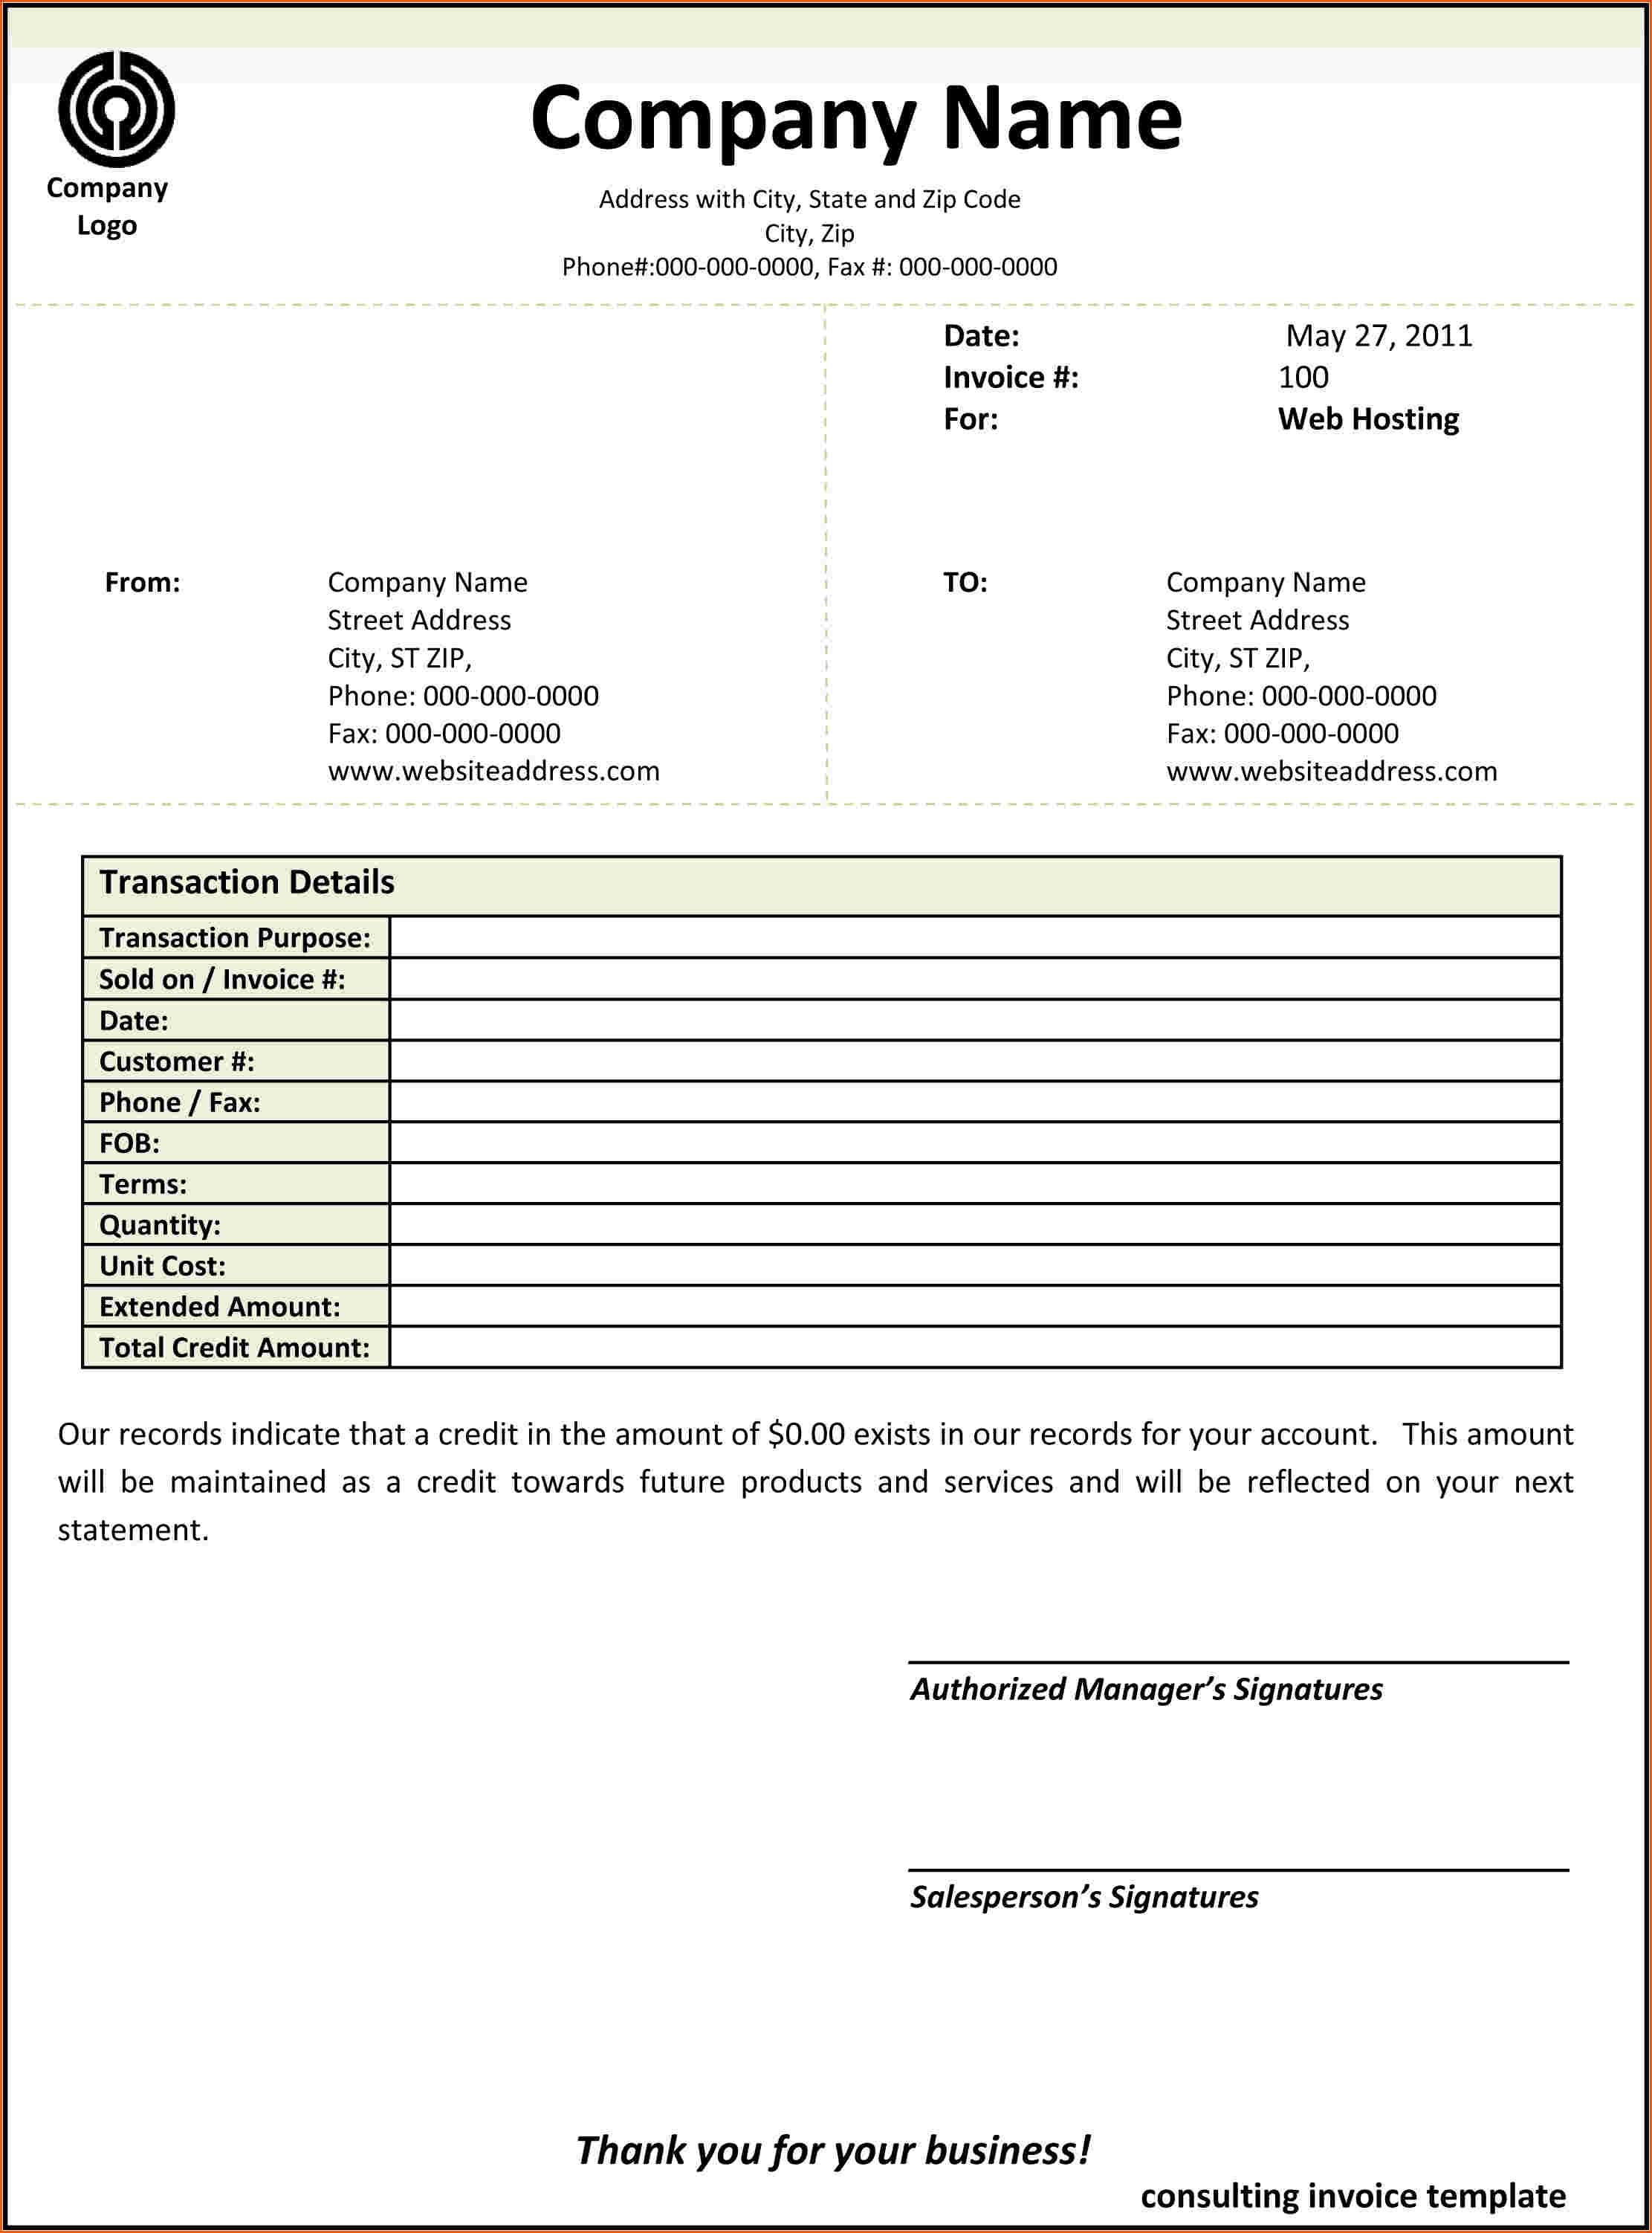 consulting invoice template 8 consulting invoice template word denial letter sample 2223 X 3004